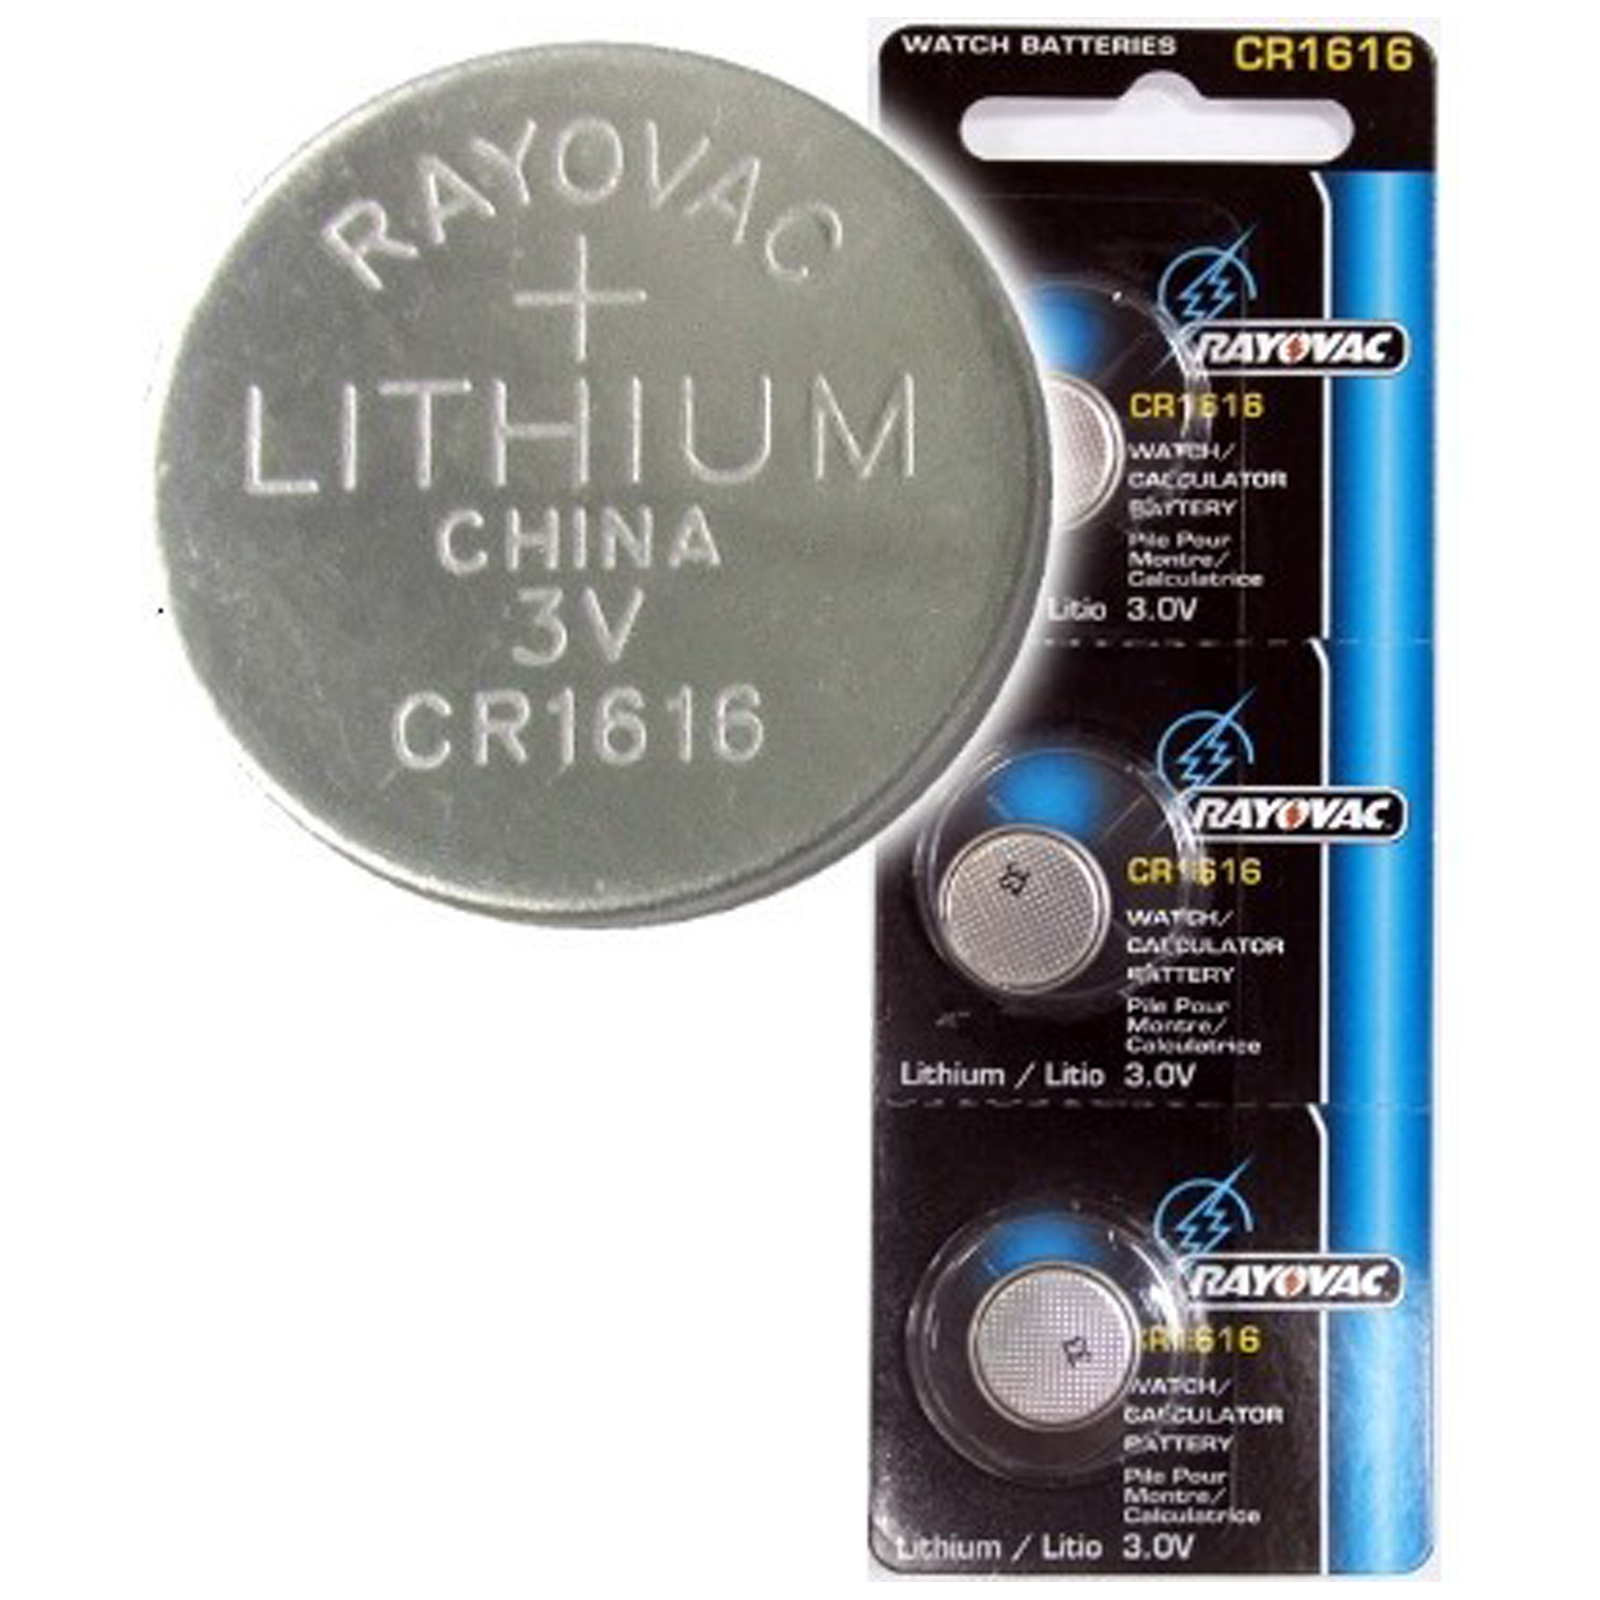 3pk Rayovac CR1616 3V Lithium Coin Cell Battery Replaces RV1616 FAST USA SHIP